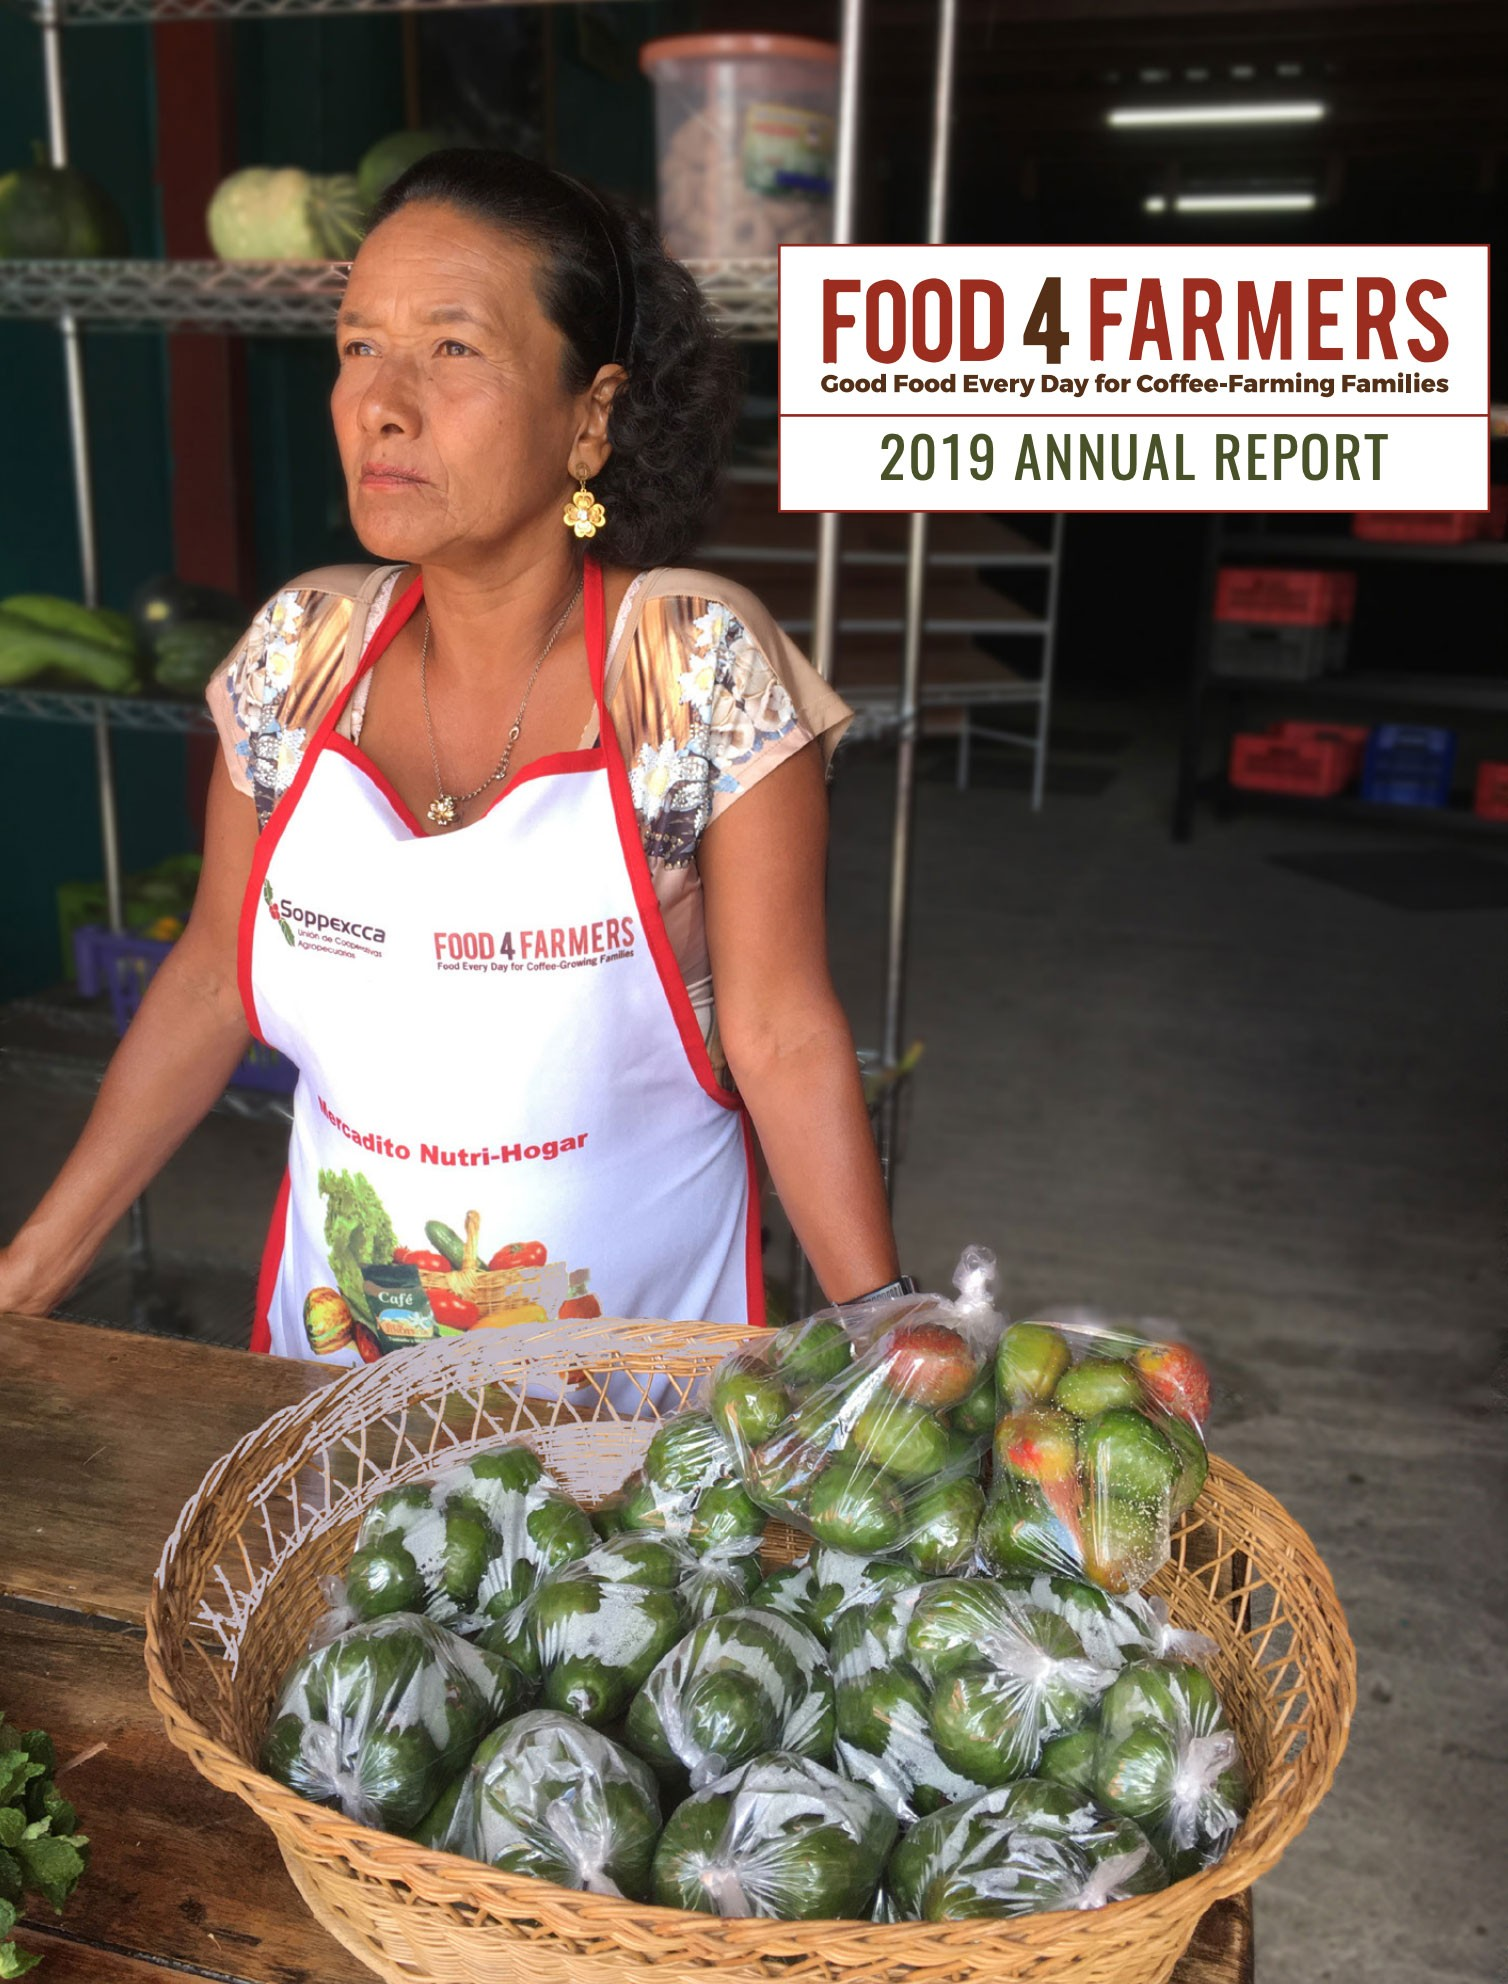 Food4Farmers 2019 Annual Report